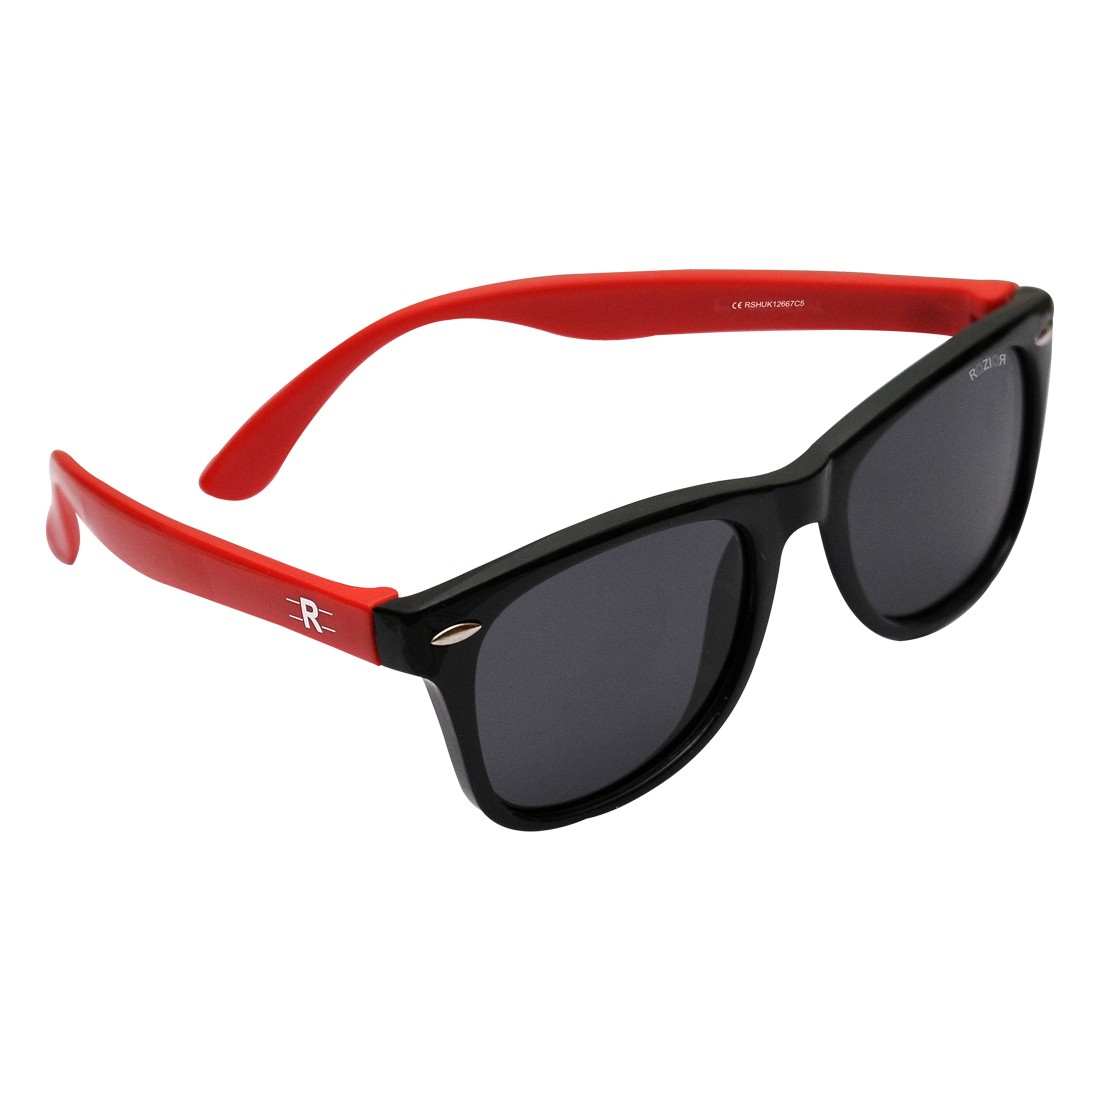 ROZIOR Kids Sunglass with UV Protection Smoke Lens with Black Frame, MODEL: RSHUK12667C5